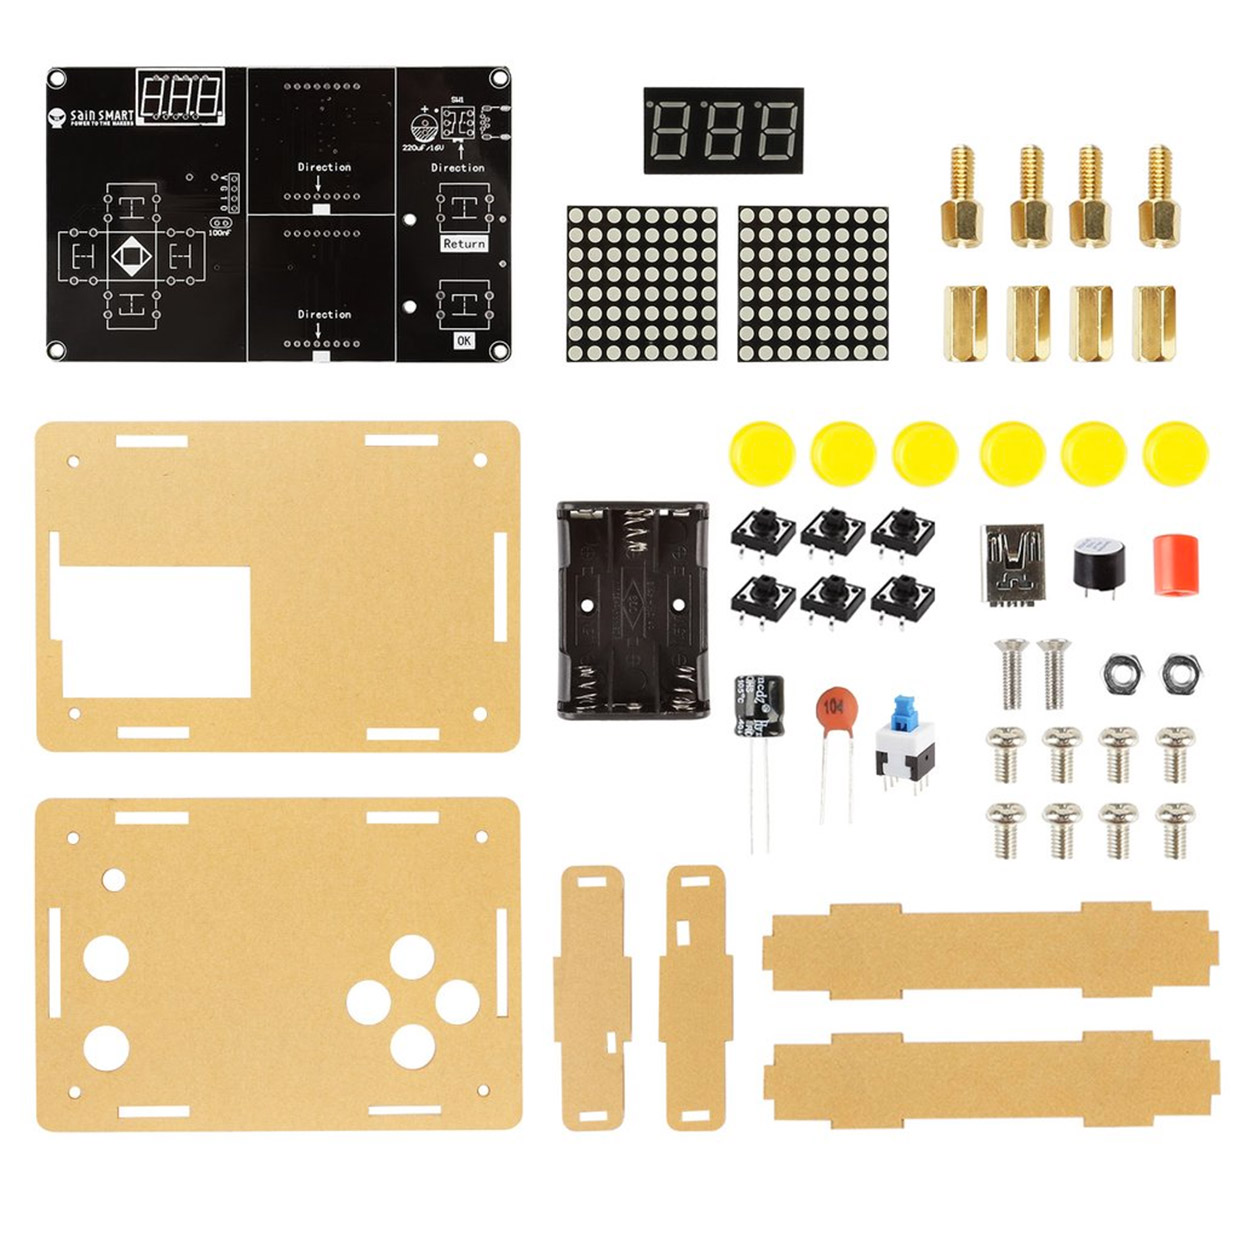 Build Your Own Minimal Gaming Handheld Technabob Simple Circuit Yourself Assembly Is And Easy To Do By As Long You Have Basic Soldering Skills When Its Ready Go Can Play It Using Either Usb Or Battery